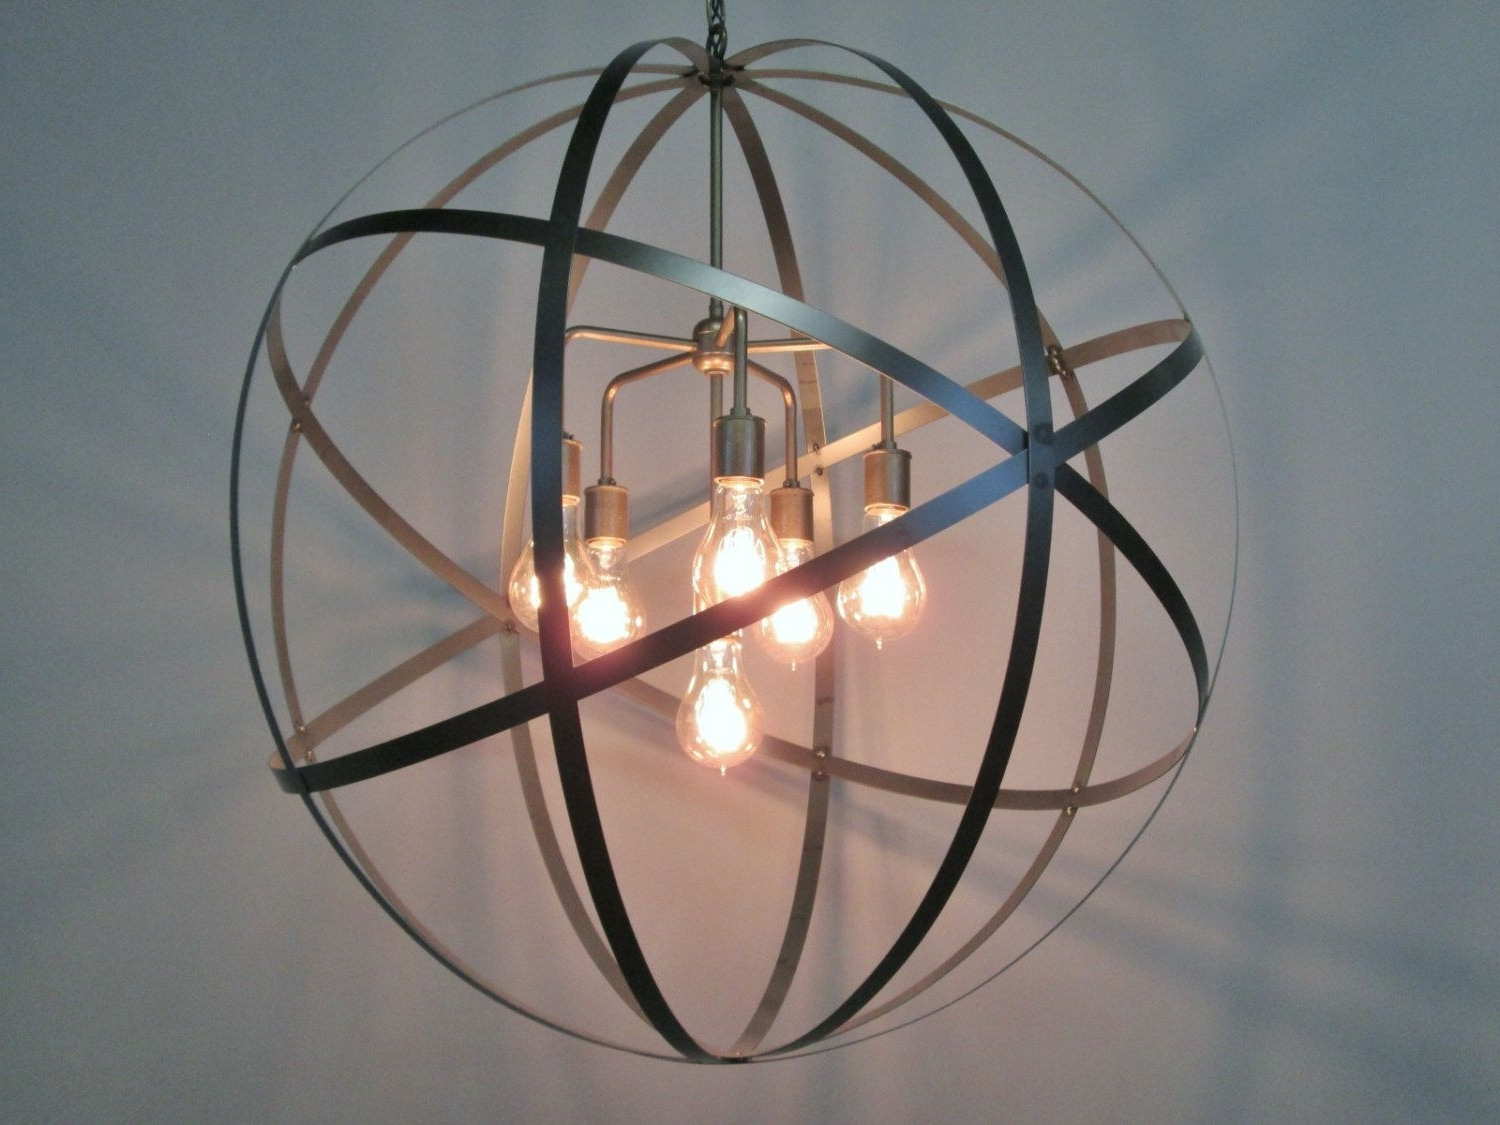 Beautiful Orb Chandelier For Home Decor Lights Ideas: Industrial 30 Throughout Most Current Orb Chandeliers (View 1 of 15)